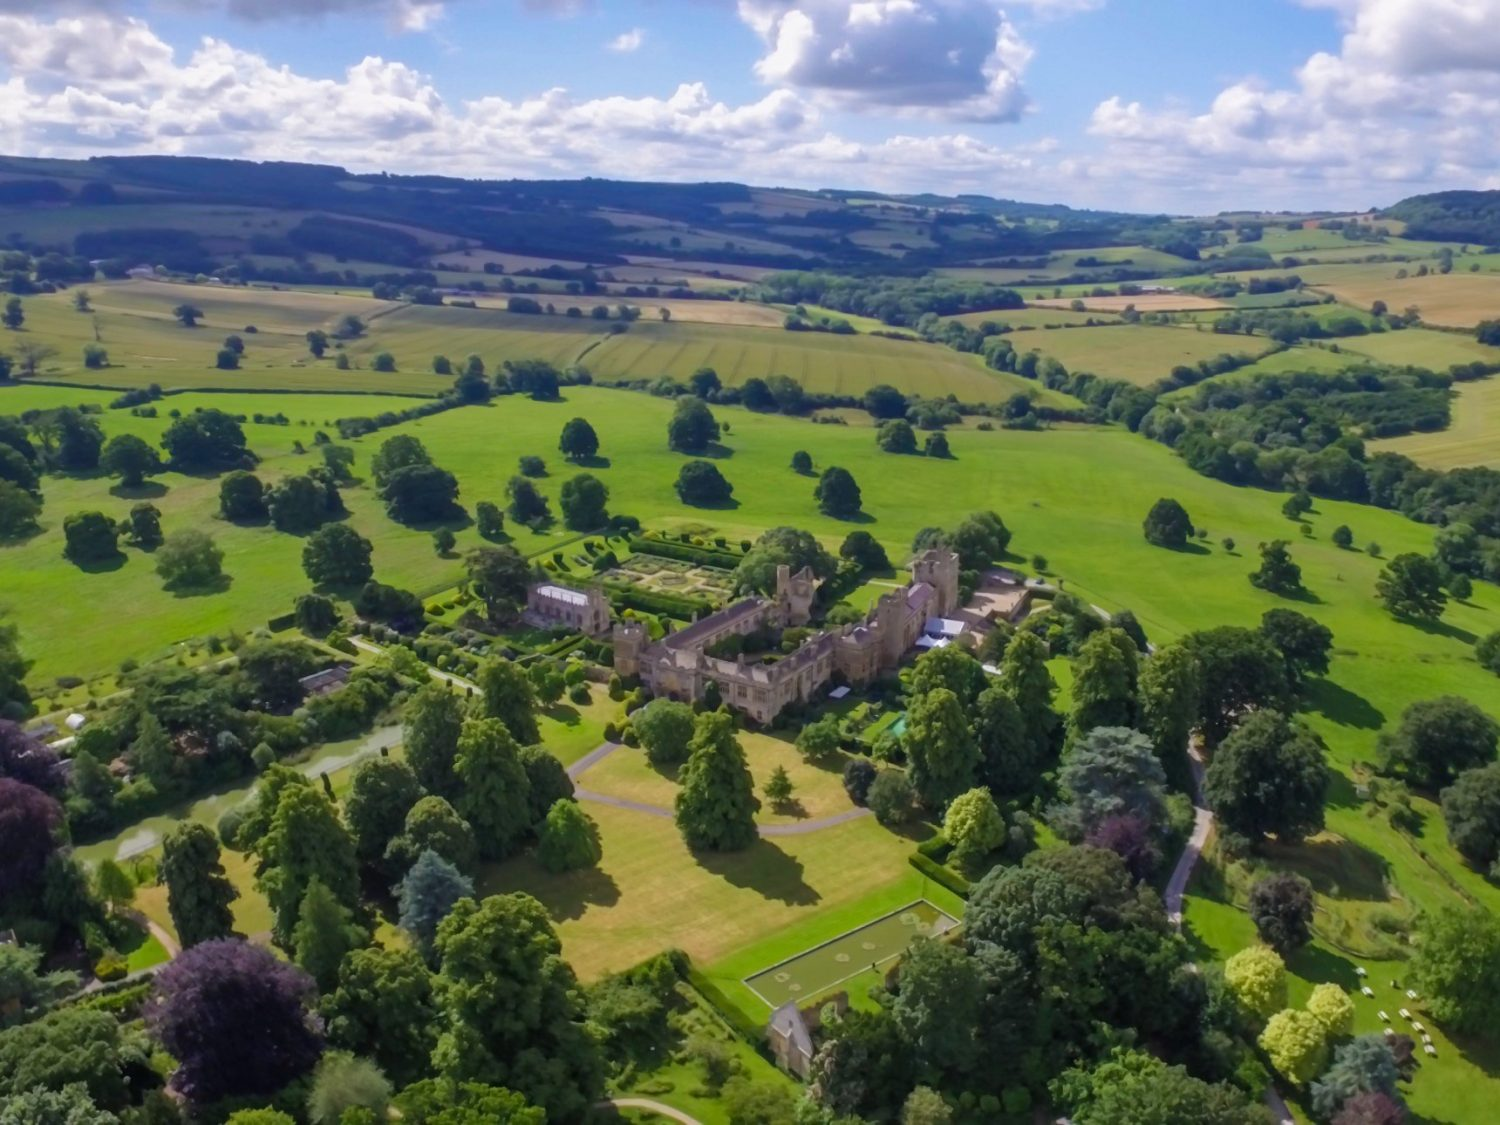 Drone shot of Sudeley Castle